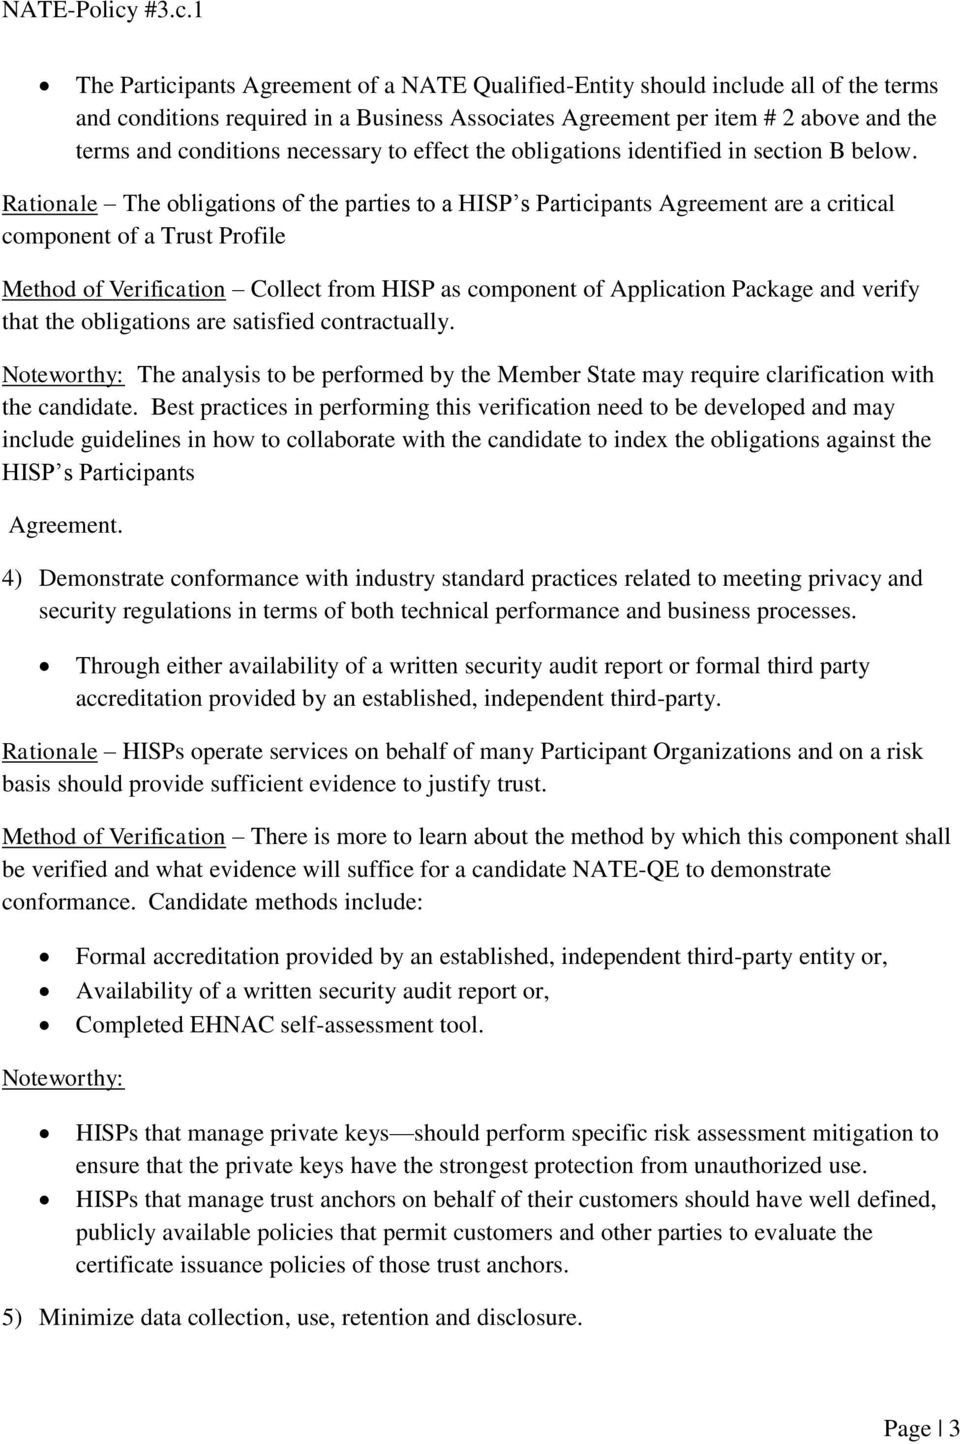 Rationale The obligations of the parties to a HISP s Participants Agreement are a critical component of a Trust Profile Method of Verification Collect from HISP as component of Application Package